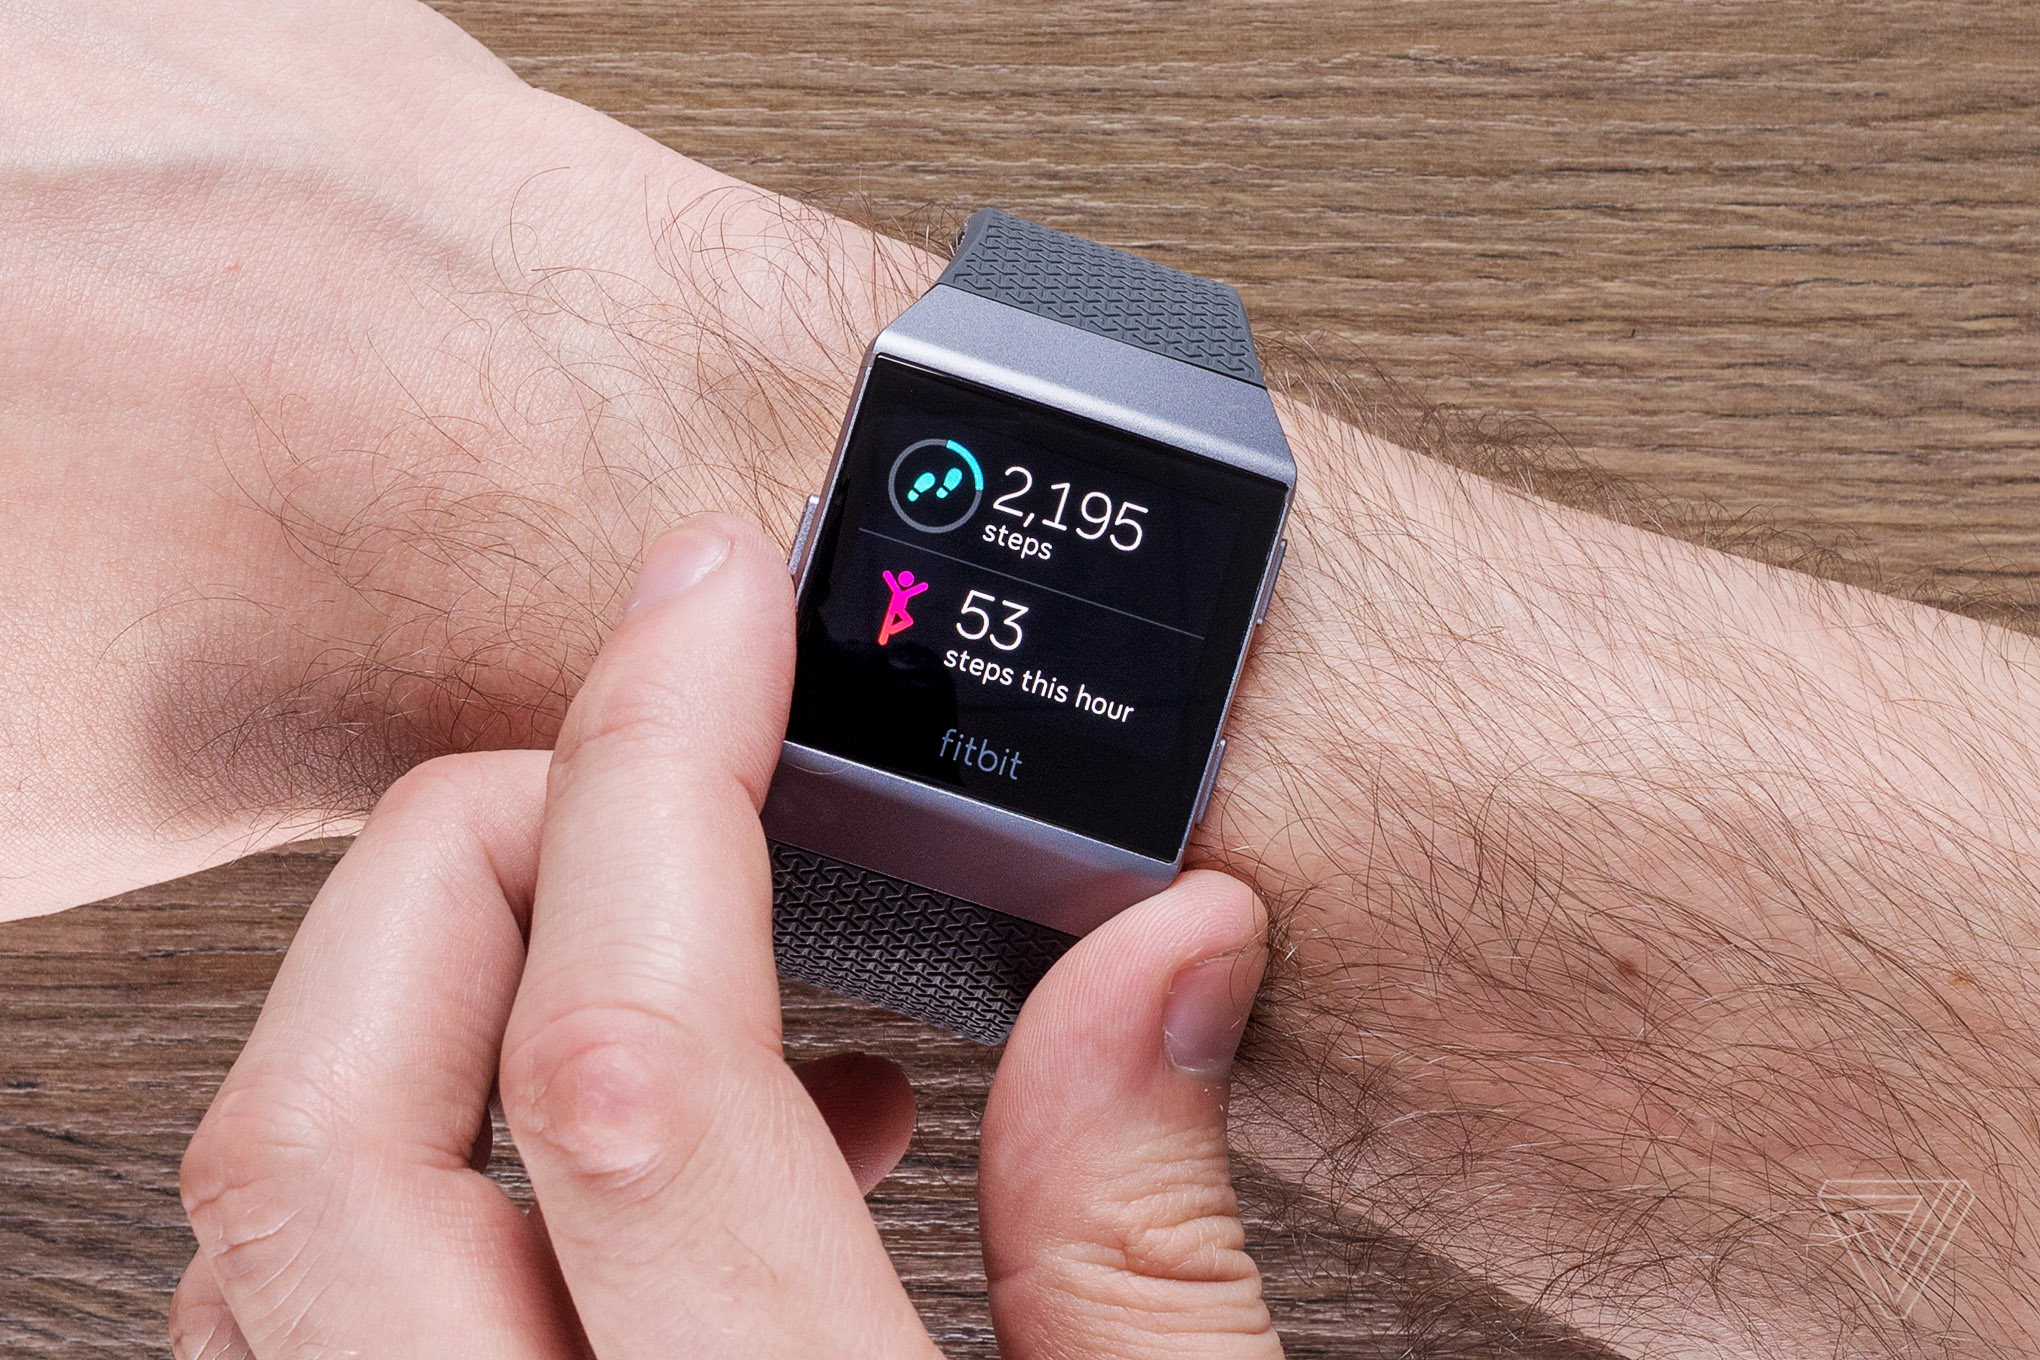 itech-dude-contents-akrales_170823_1942_0009 Fitbit has a lot to prove with Ionic, its new smartwatch | iTech Dude - The Technology Blog